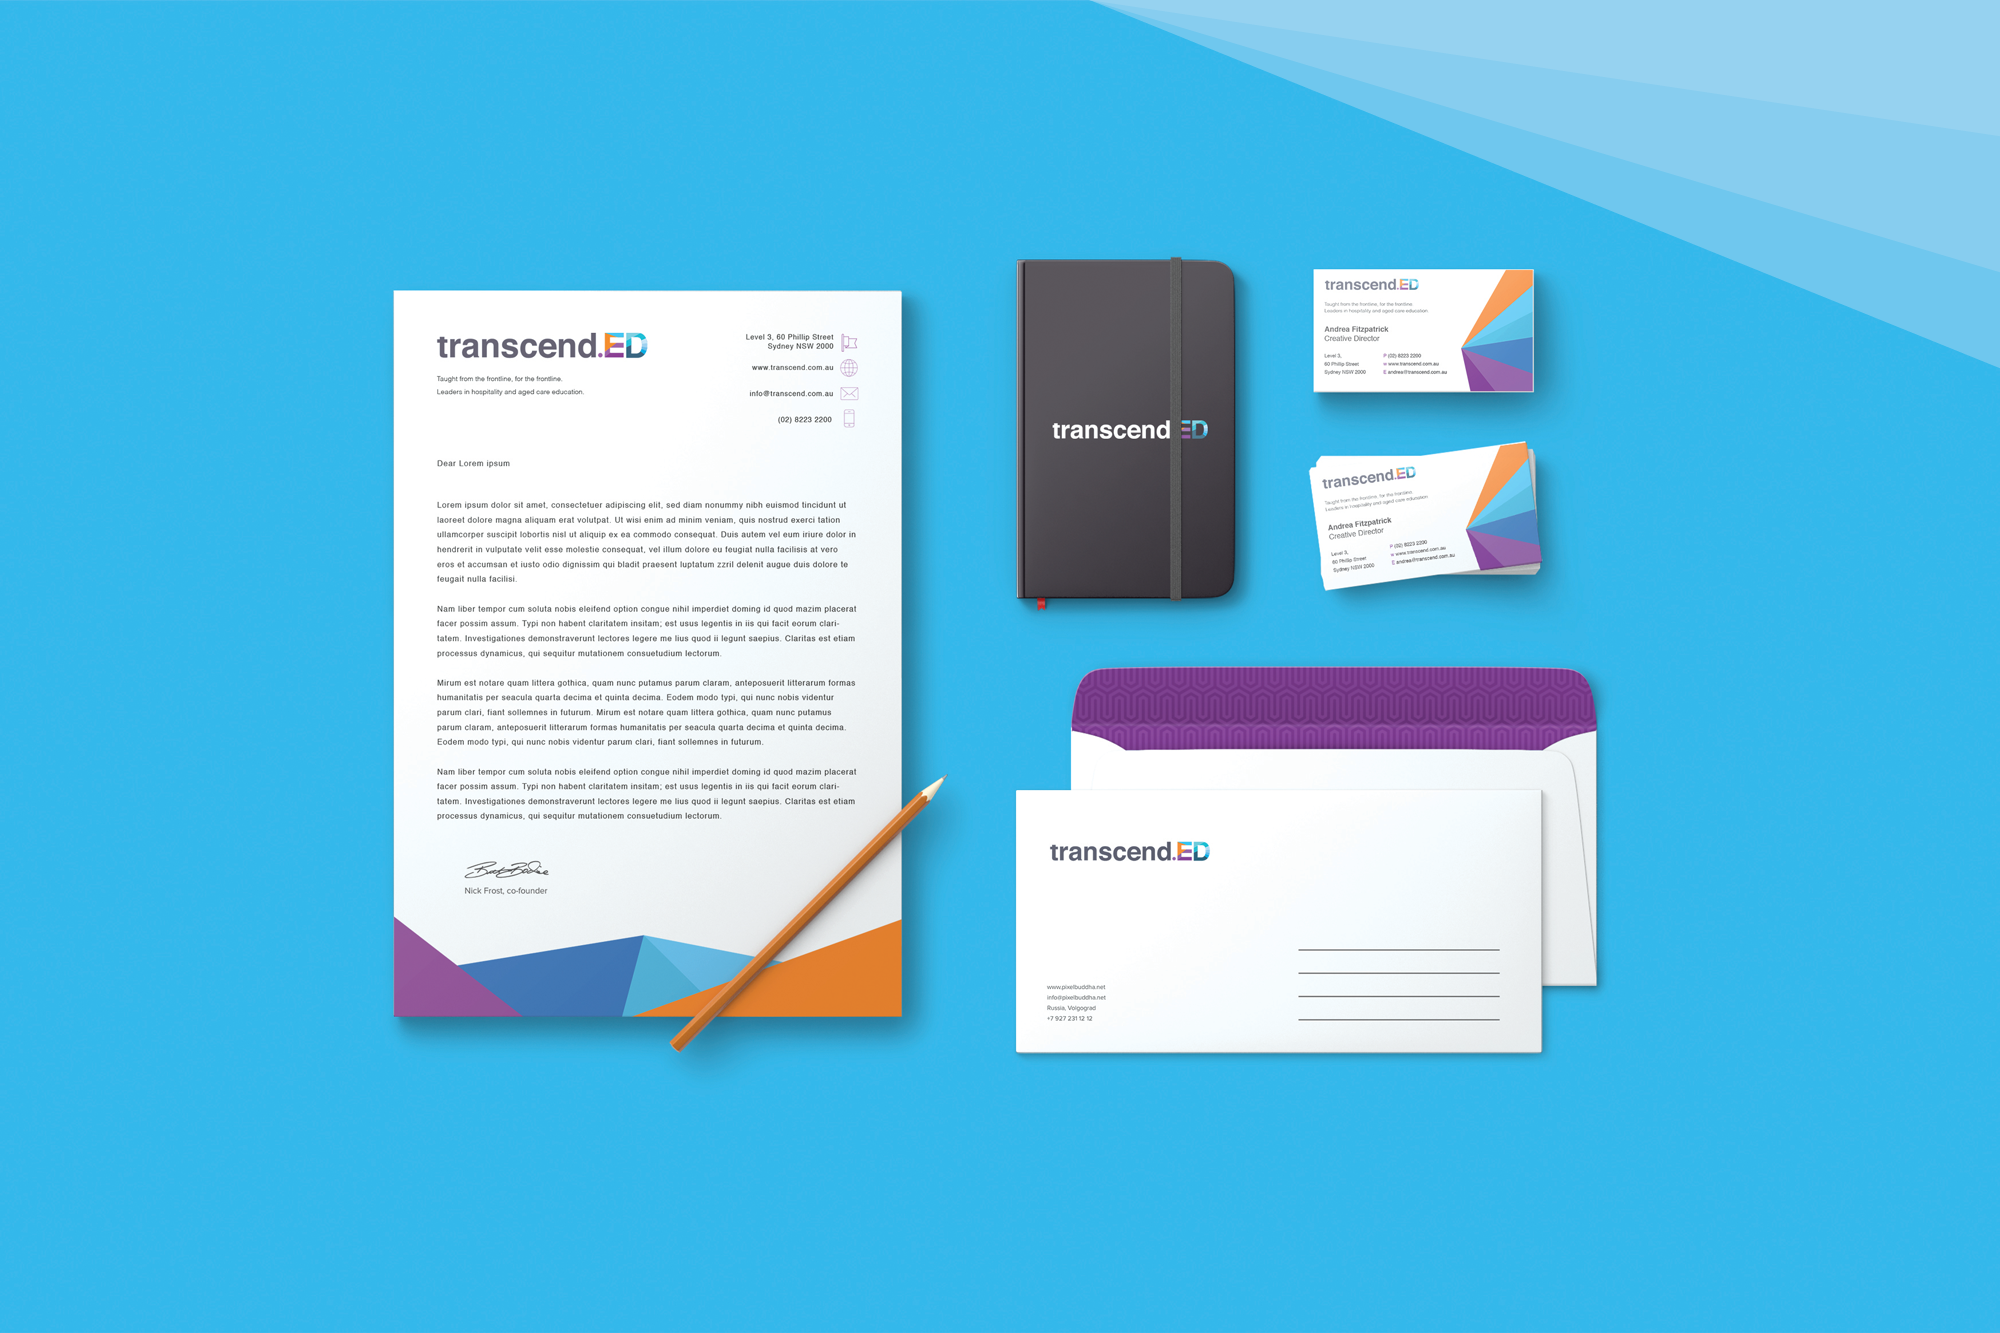 Transcend business collateral mockup